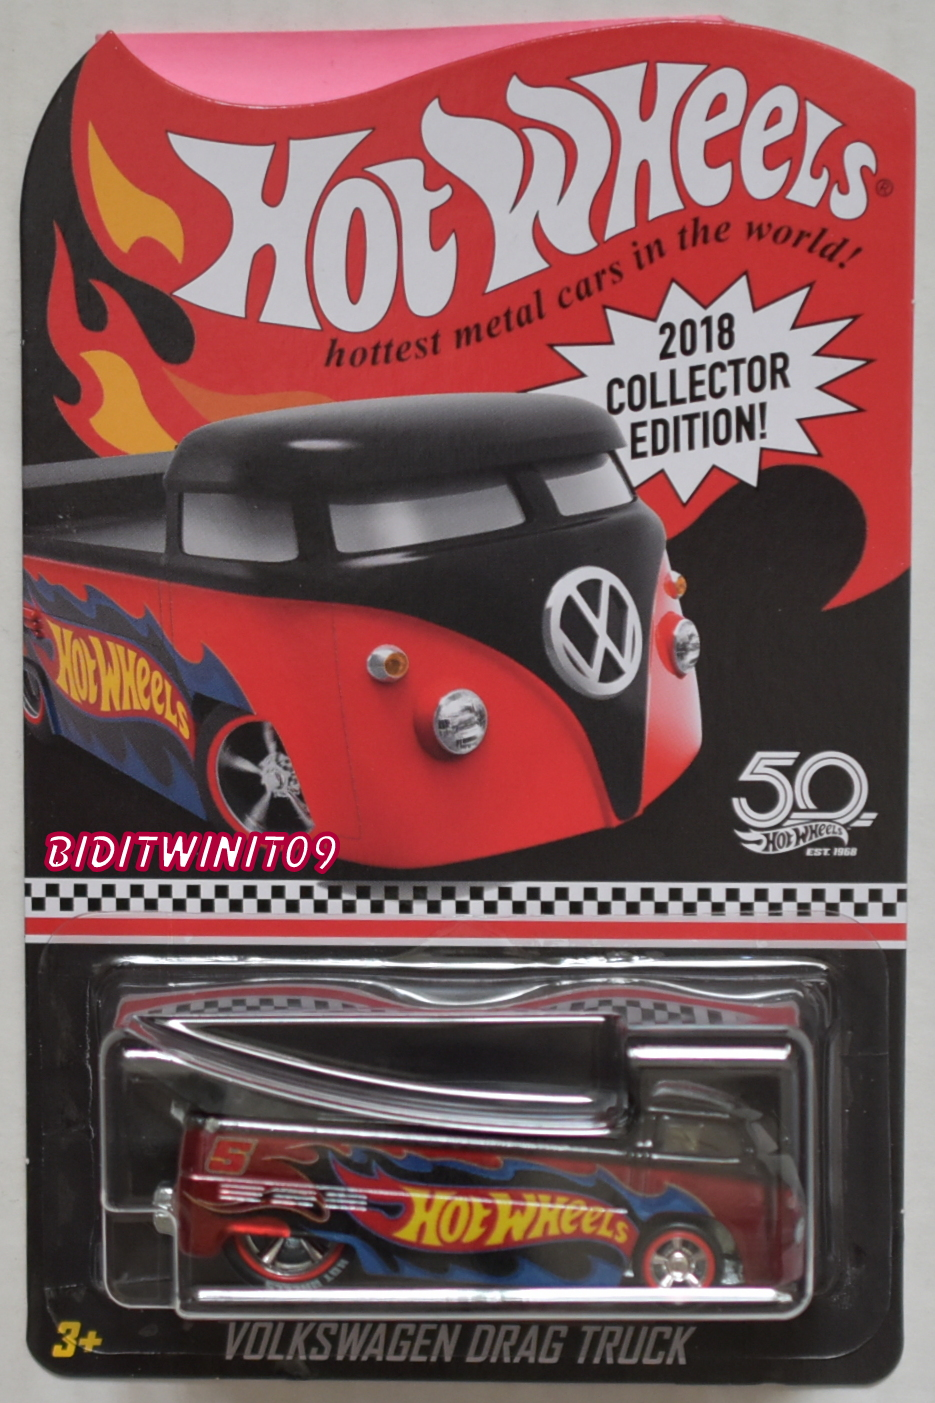 HOT WHEELS 2019 COLLECTOR EDITION VOLKSWAGEN DRAG TRUCK KMART MAILED IN